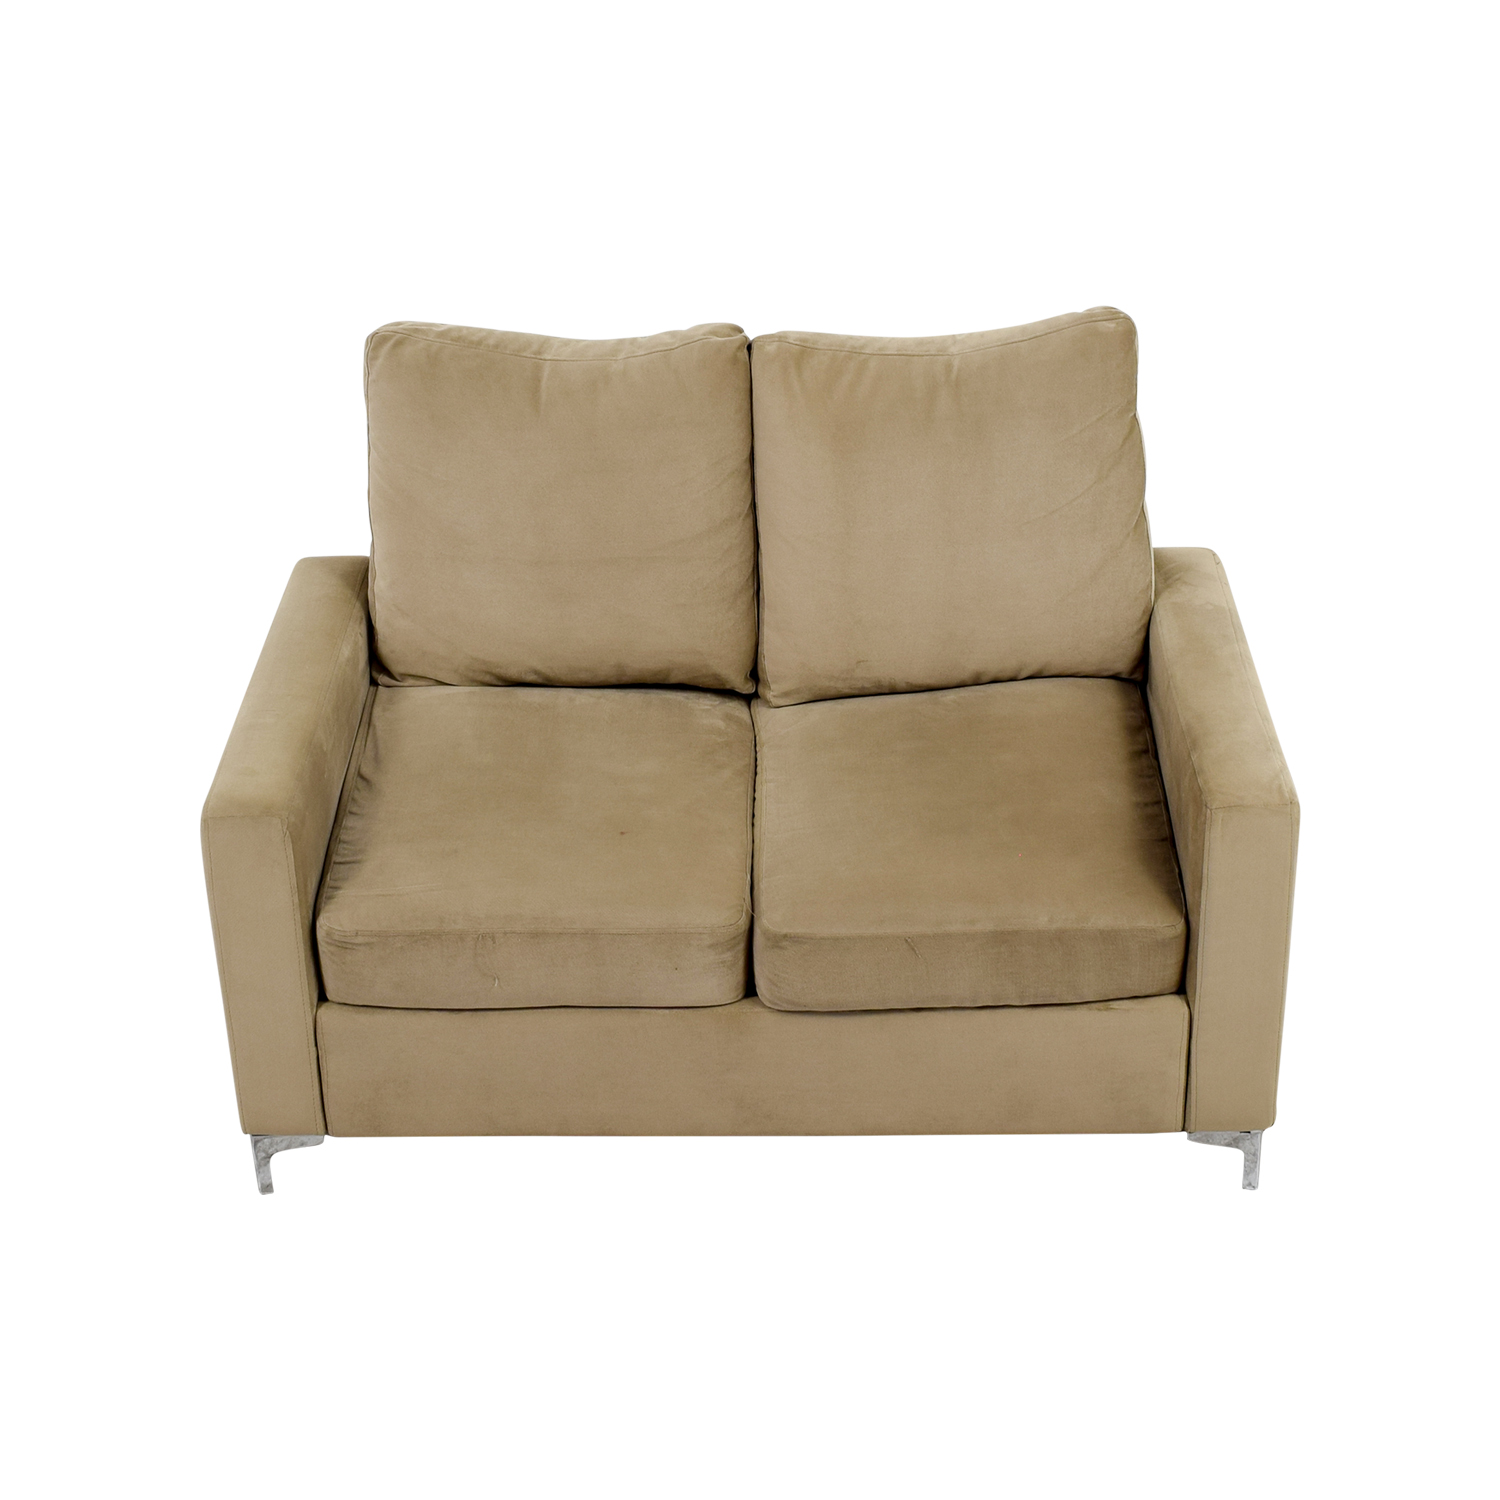 Cream Microfiber Loveseat nj